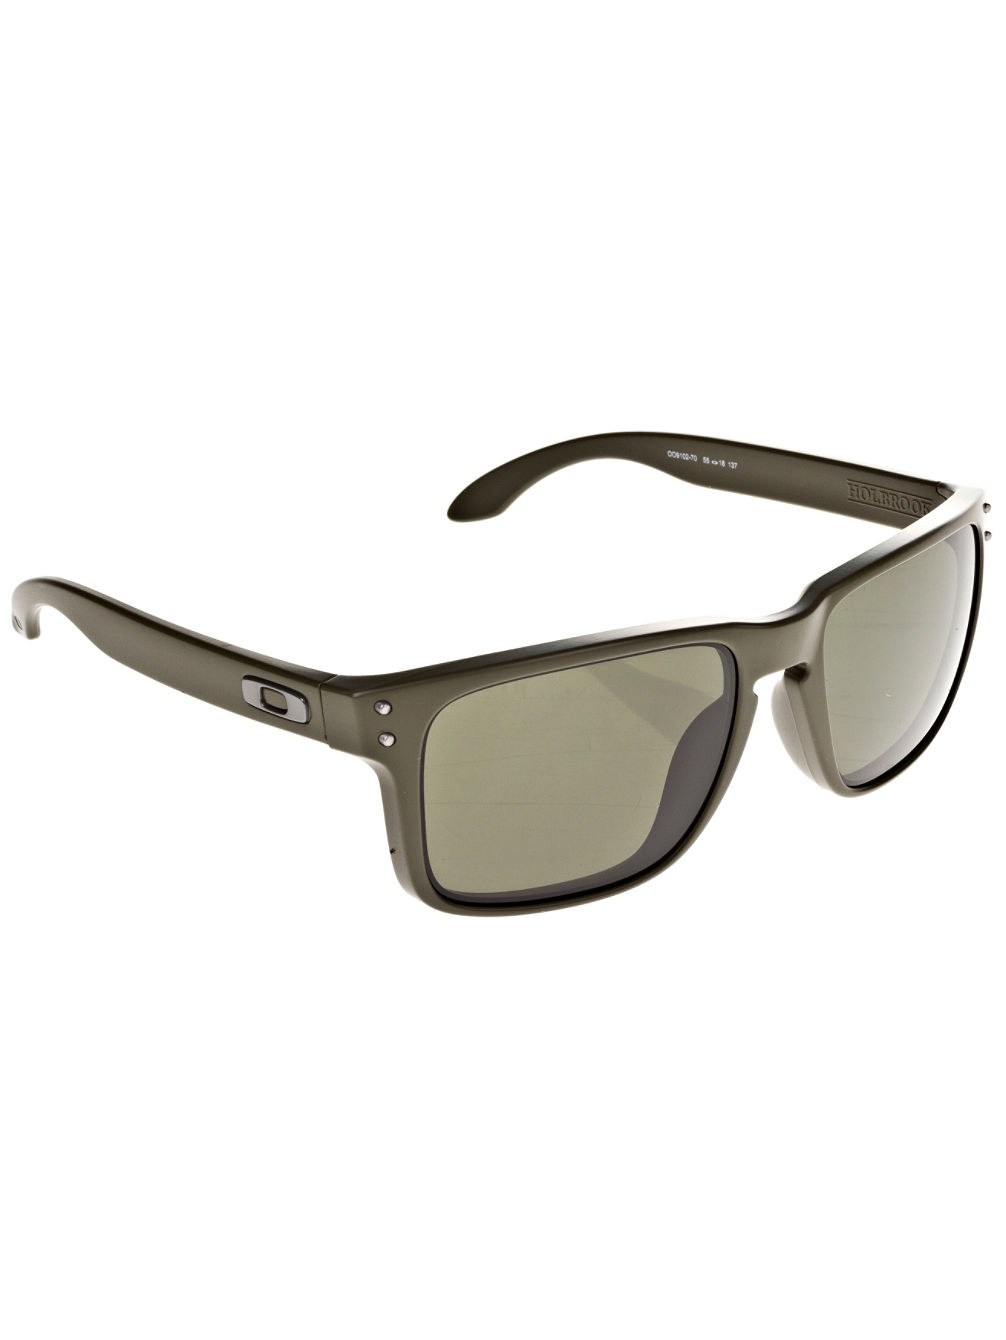 43e9f97a01 Fake Oakley Holbrook Free Shipping Worldwide | City of Kenmore ...